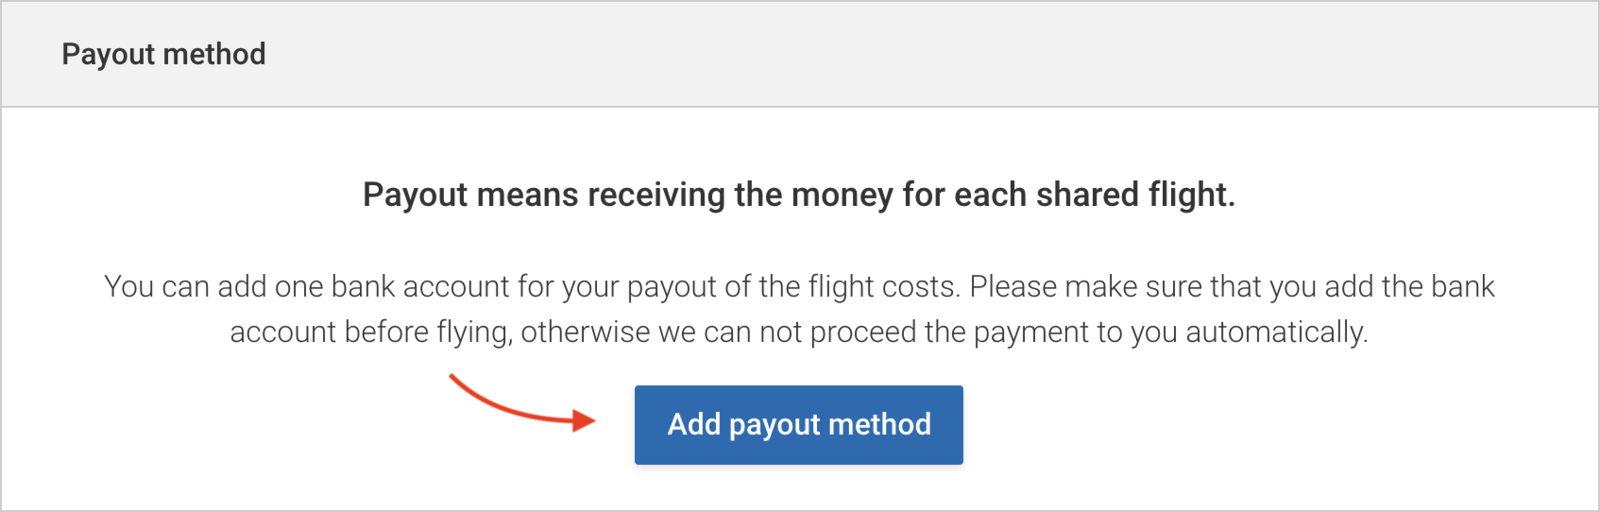 Click to add a payout method